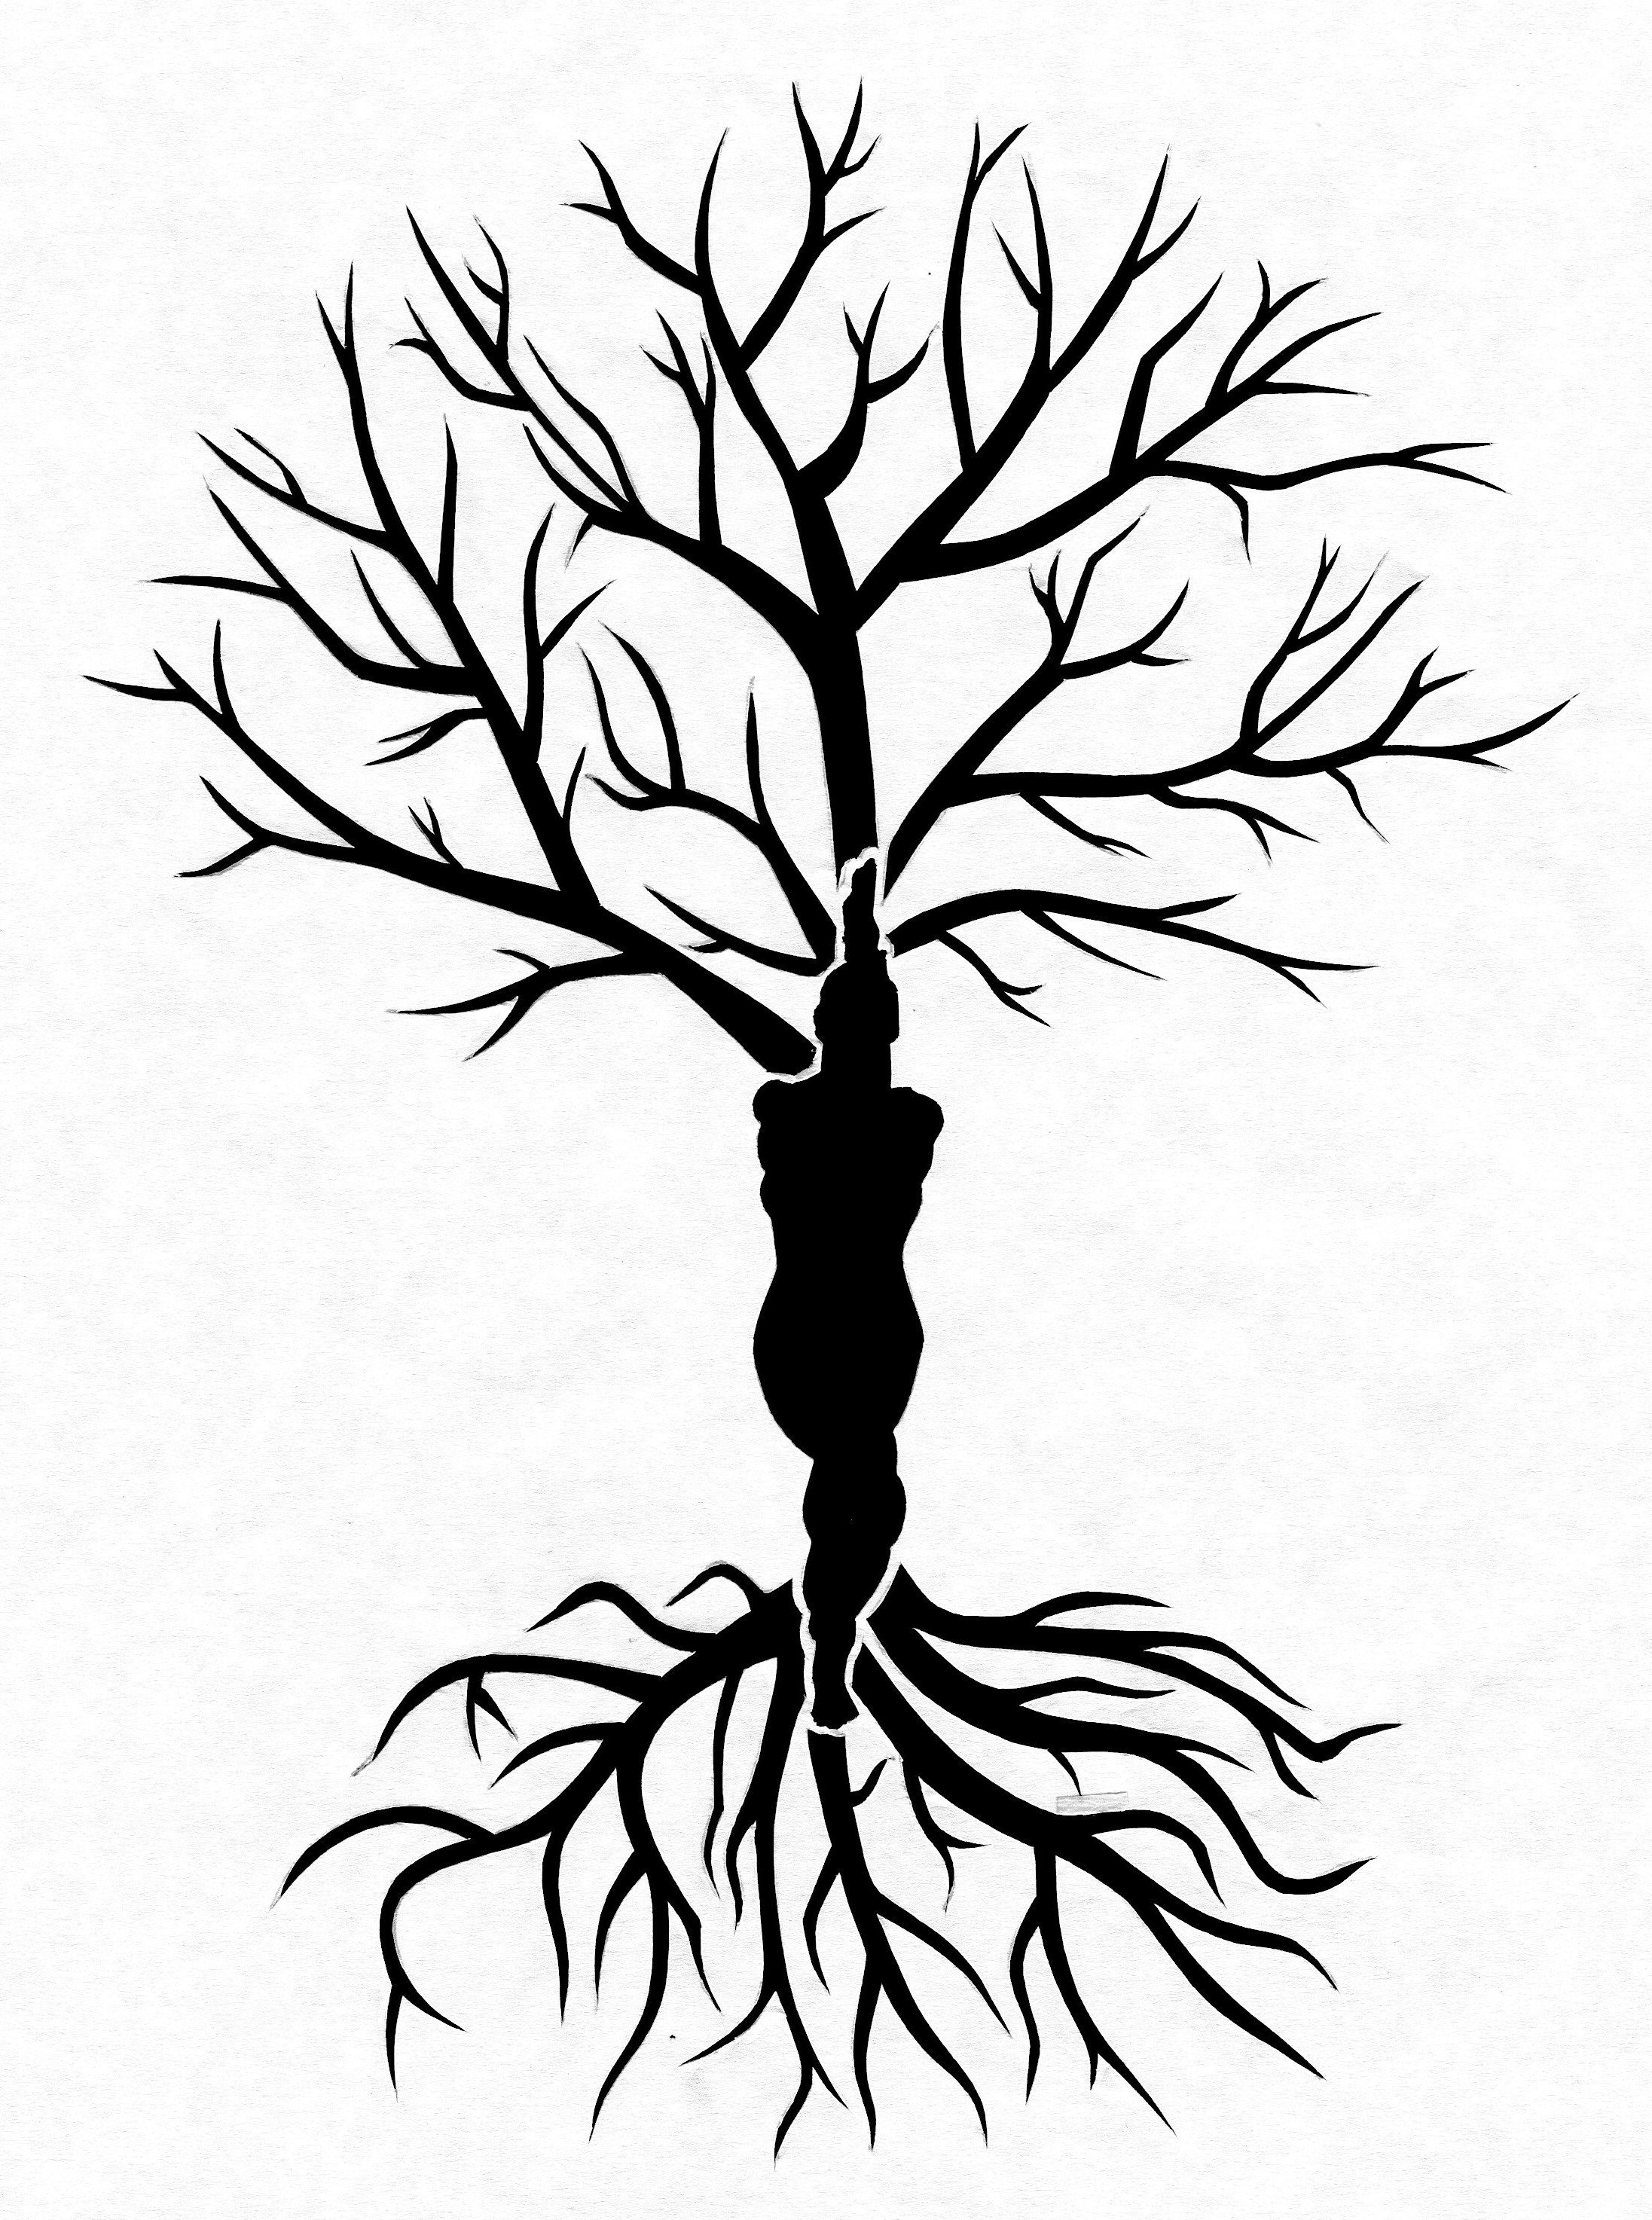 Yoga Eagle Pose Tree Of Life Stencil I Designed For Helen